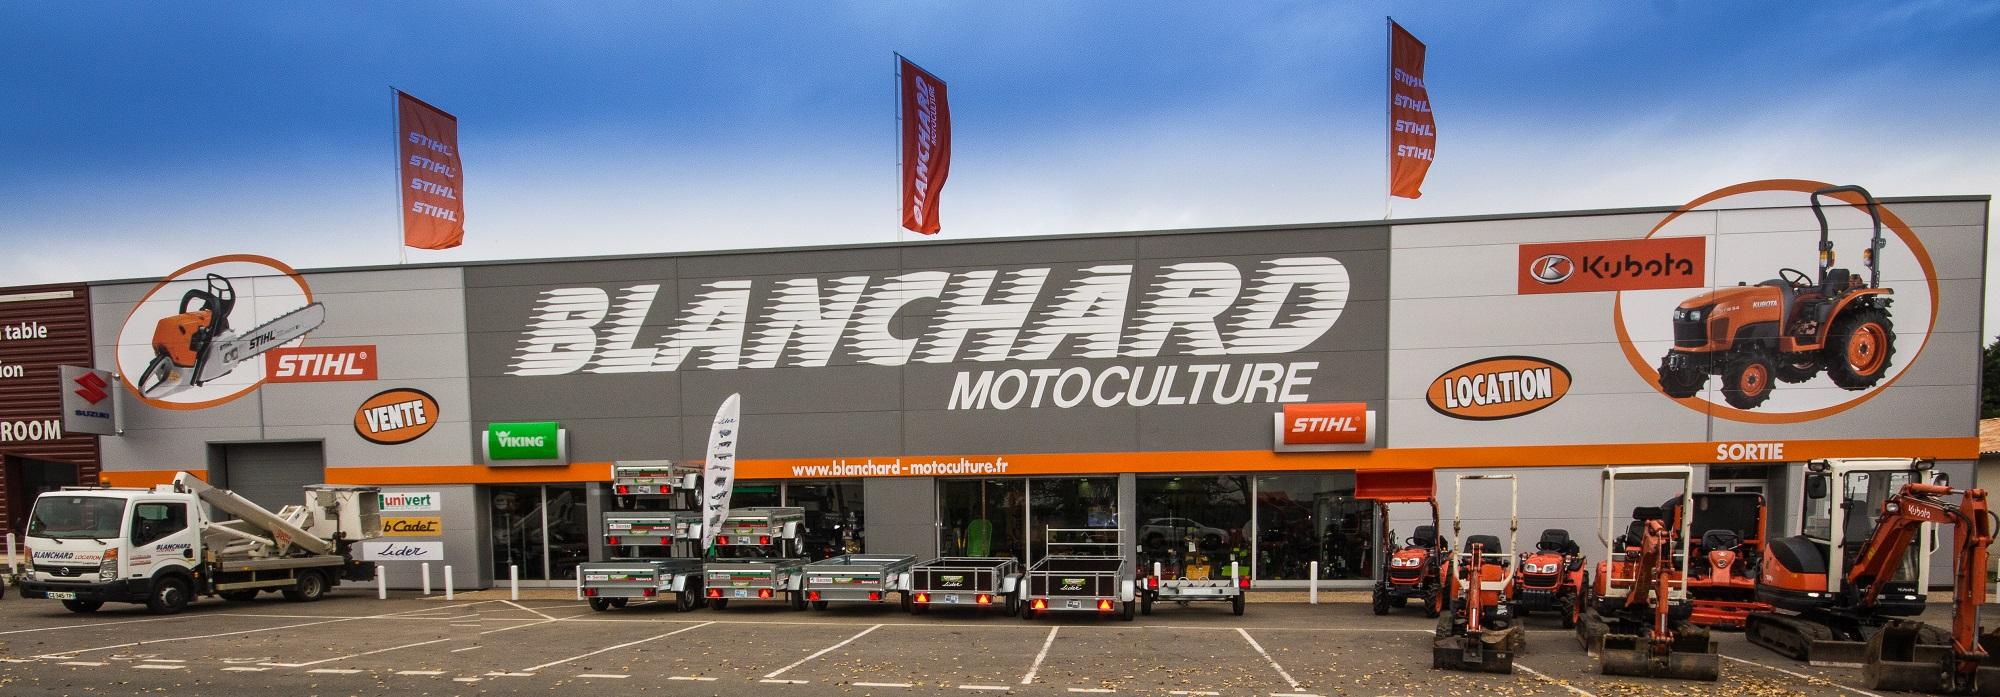 blanchard motoculture